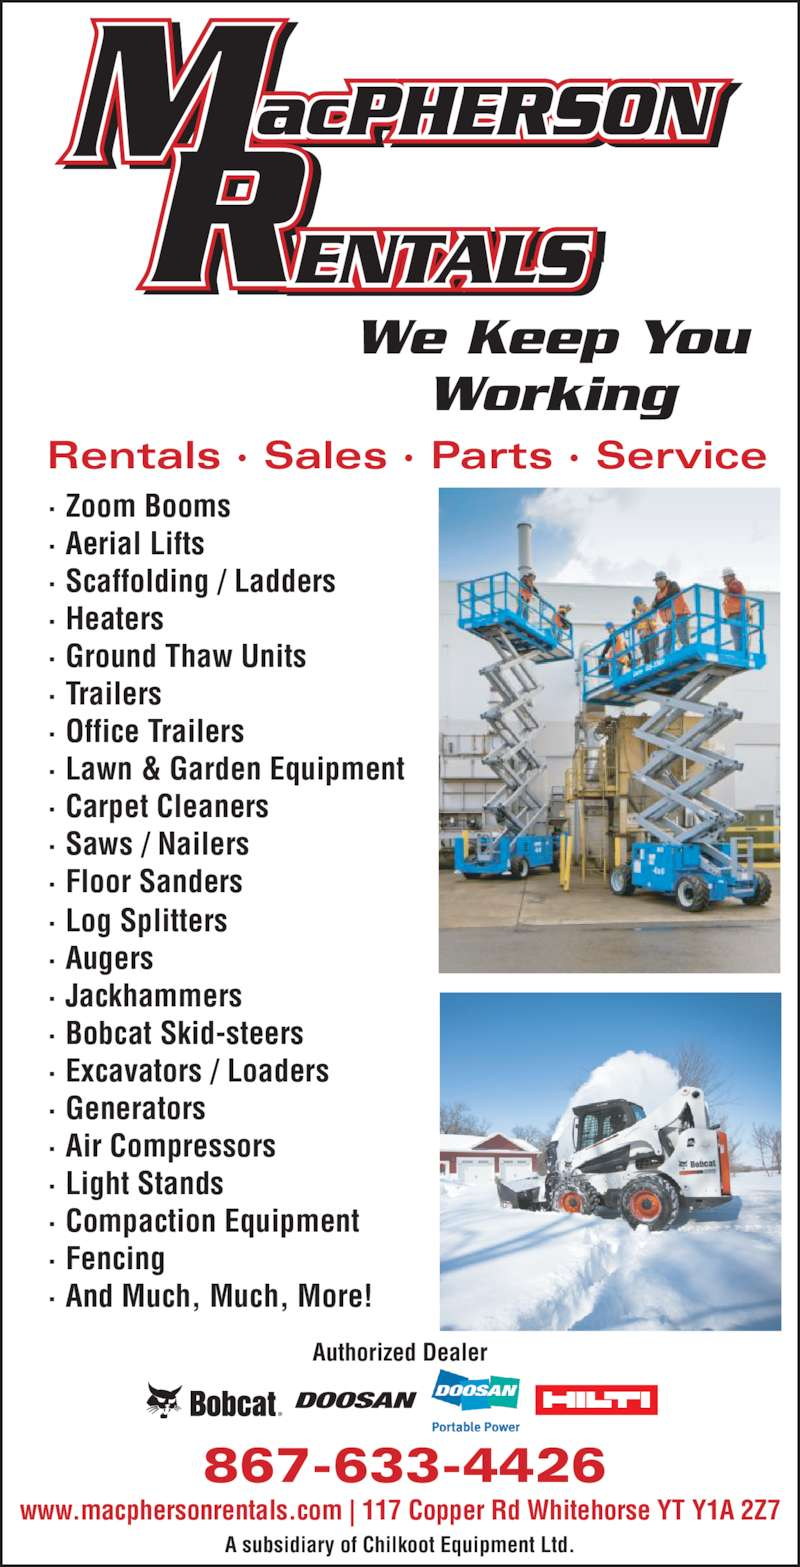 MacPherson Rentals (867-633-4426) - Display Ad - Authorized Dealer 867-633-4426 www.macphersonrentals.com | 117 Copper Rd Whitehorse YT Y1A 2Z7 A subsidiary of Chilkoot Equipment Ltd. We Keep You Working Rentals · Sales · Parts · Service · Zoom Booms · Aerial Lifts · Scaffolding / Ladders · Heaters · Ground Thaw Units · Trailers · Office Trailers · Lawn & Garden Equipment · Carpet Cleaners · Saws / Nailers · Floor Sanders · Log Splitters · Augers · Jackhammers · Bobcat Skid-steers · Excavators / Loaders · Generators · Air Compressors · Light Stands · Compaction Equipment · Fencing · And Much, Much, More!